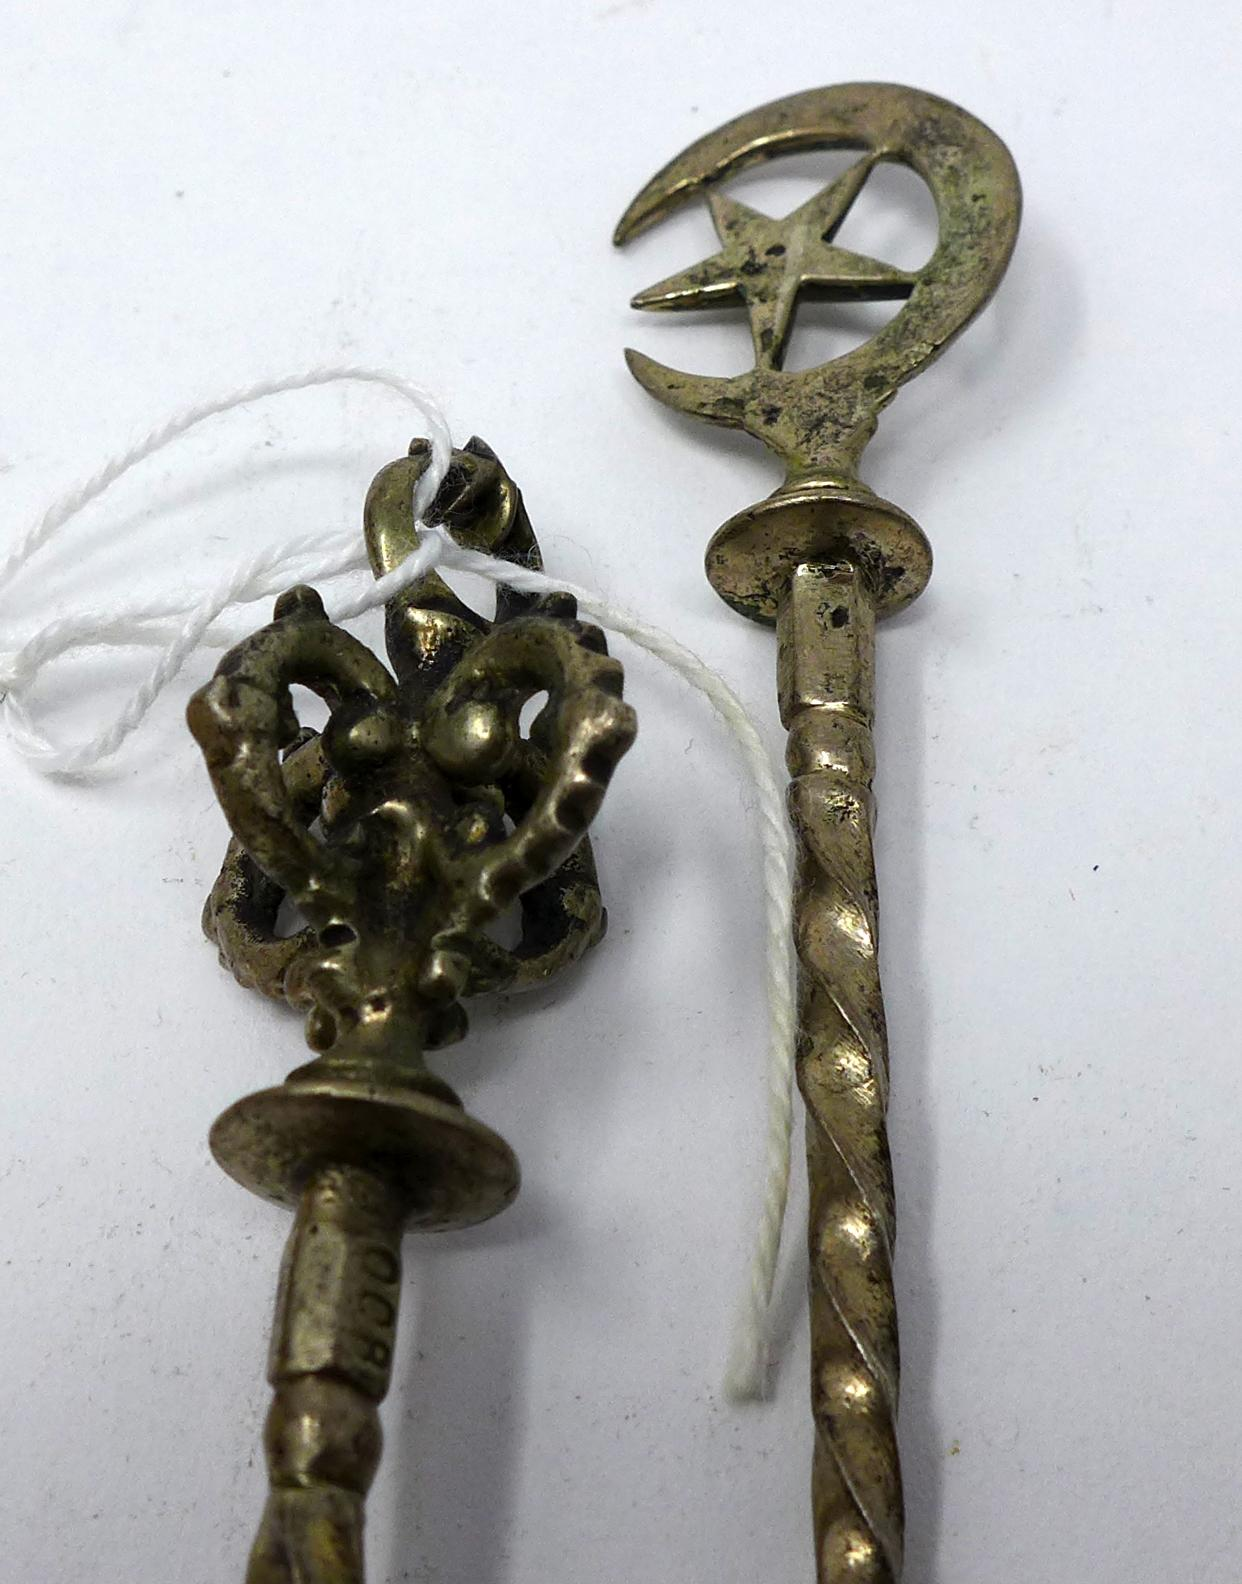 Lot 15 - Two Middle Eastern 800 silver coin spoons, with twisted stems and crescent moon and star finial